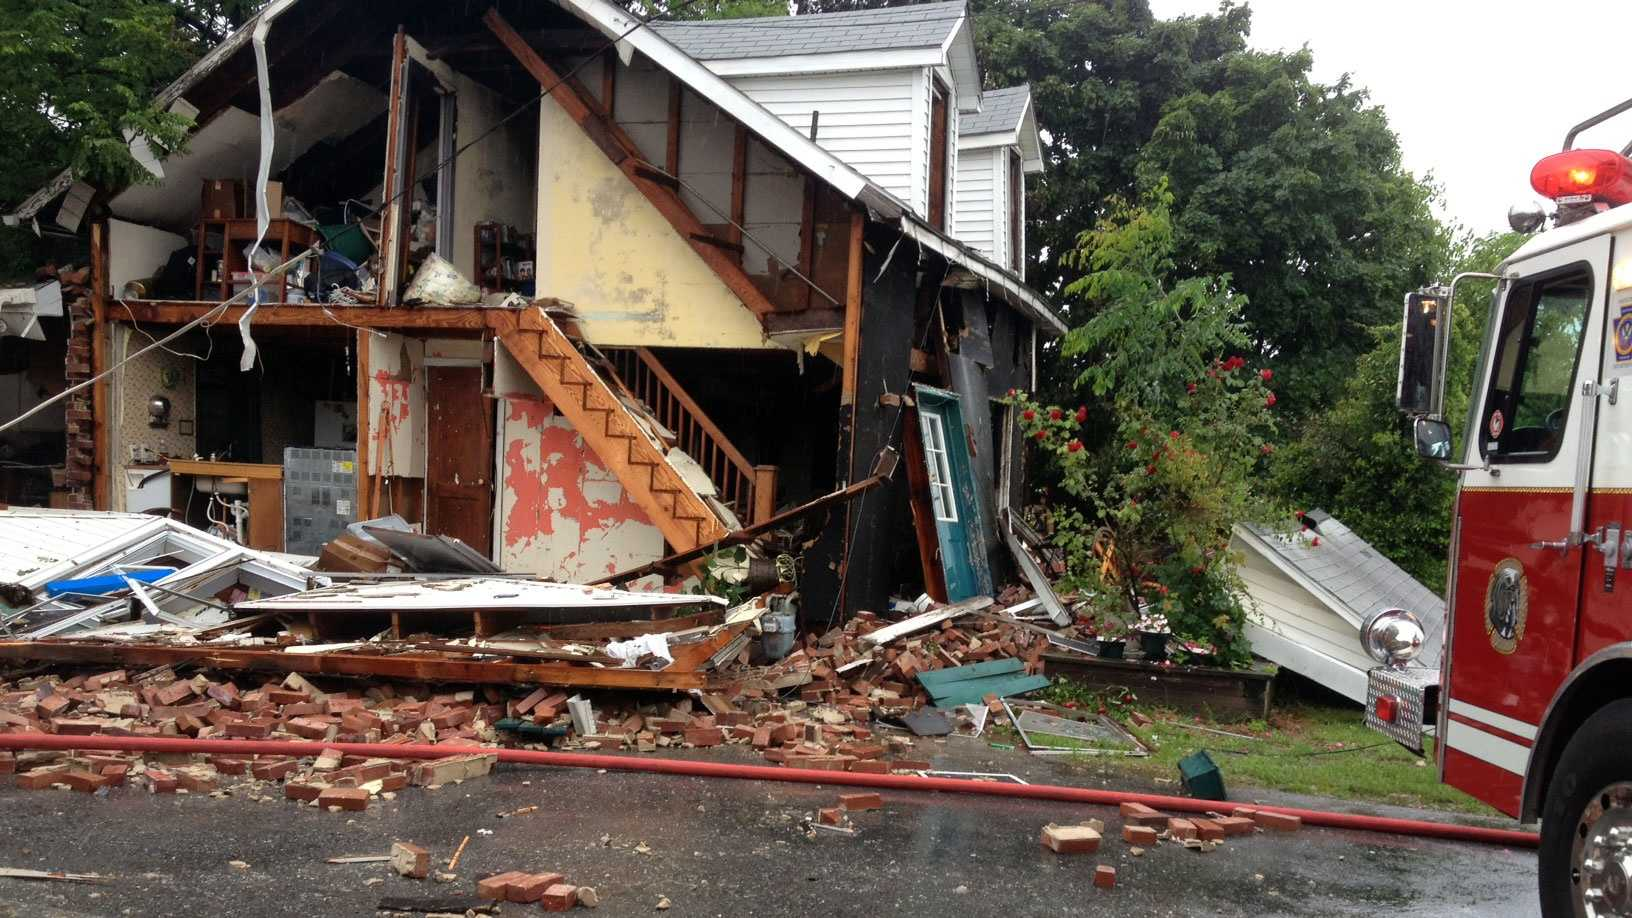 The blast knocked an entire side off the home.